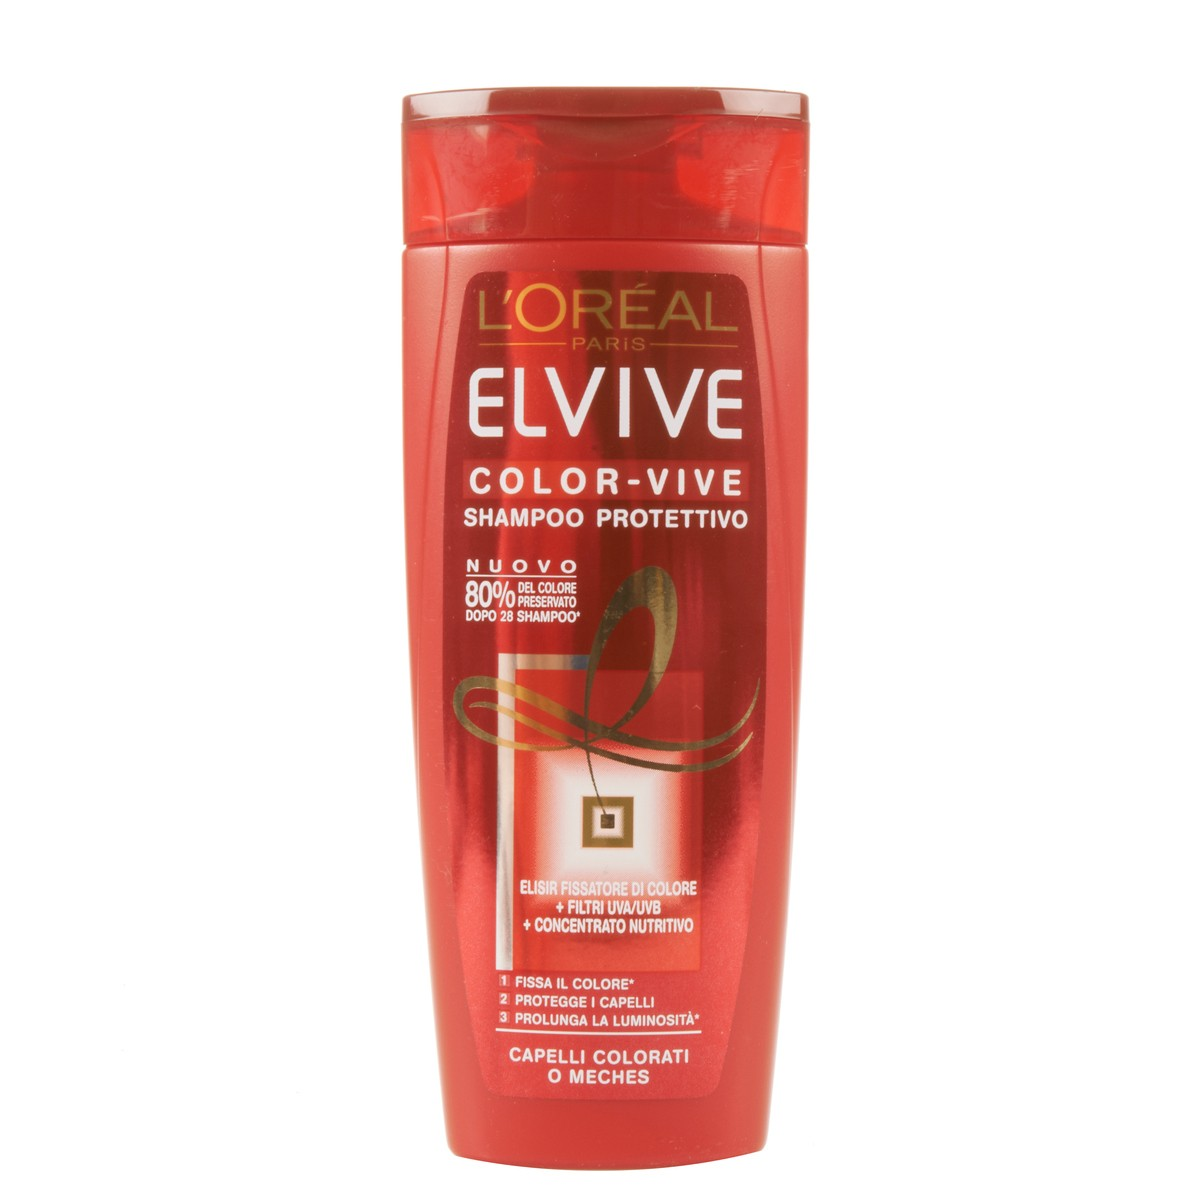 Elvive L'Oréal Paris? Shampoo protettivo Color Vive